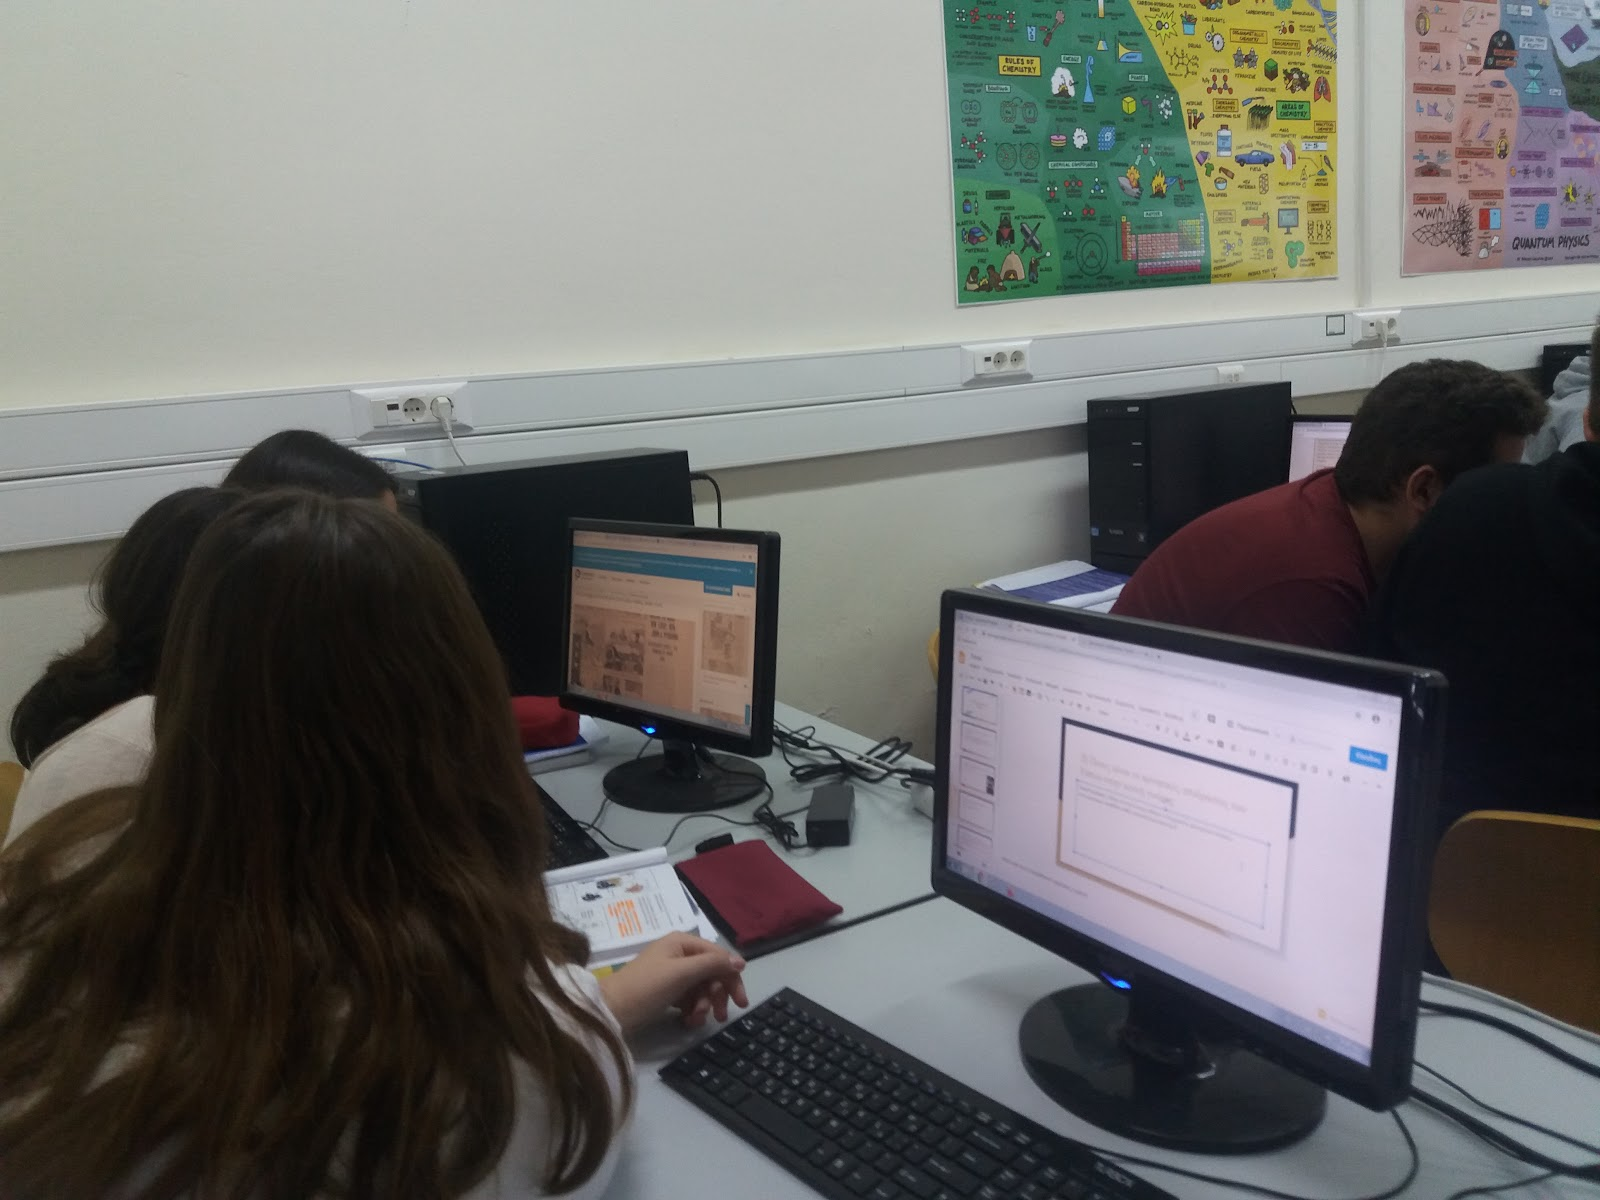 Students working in group